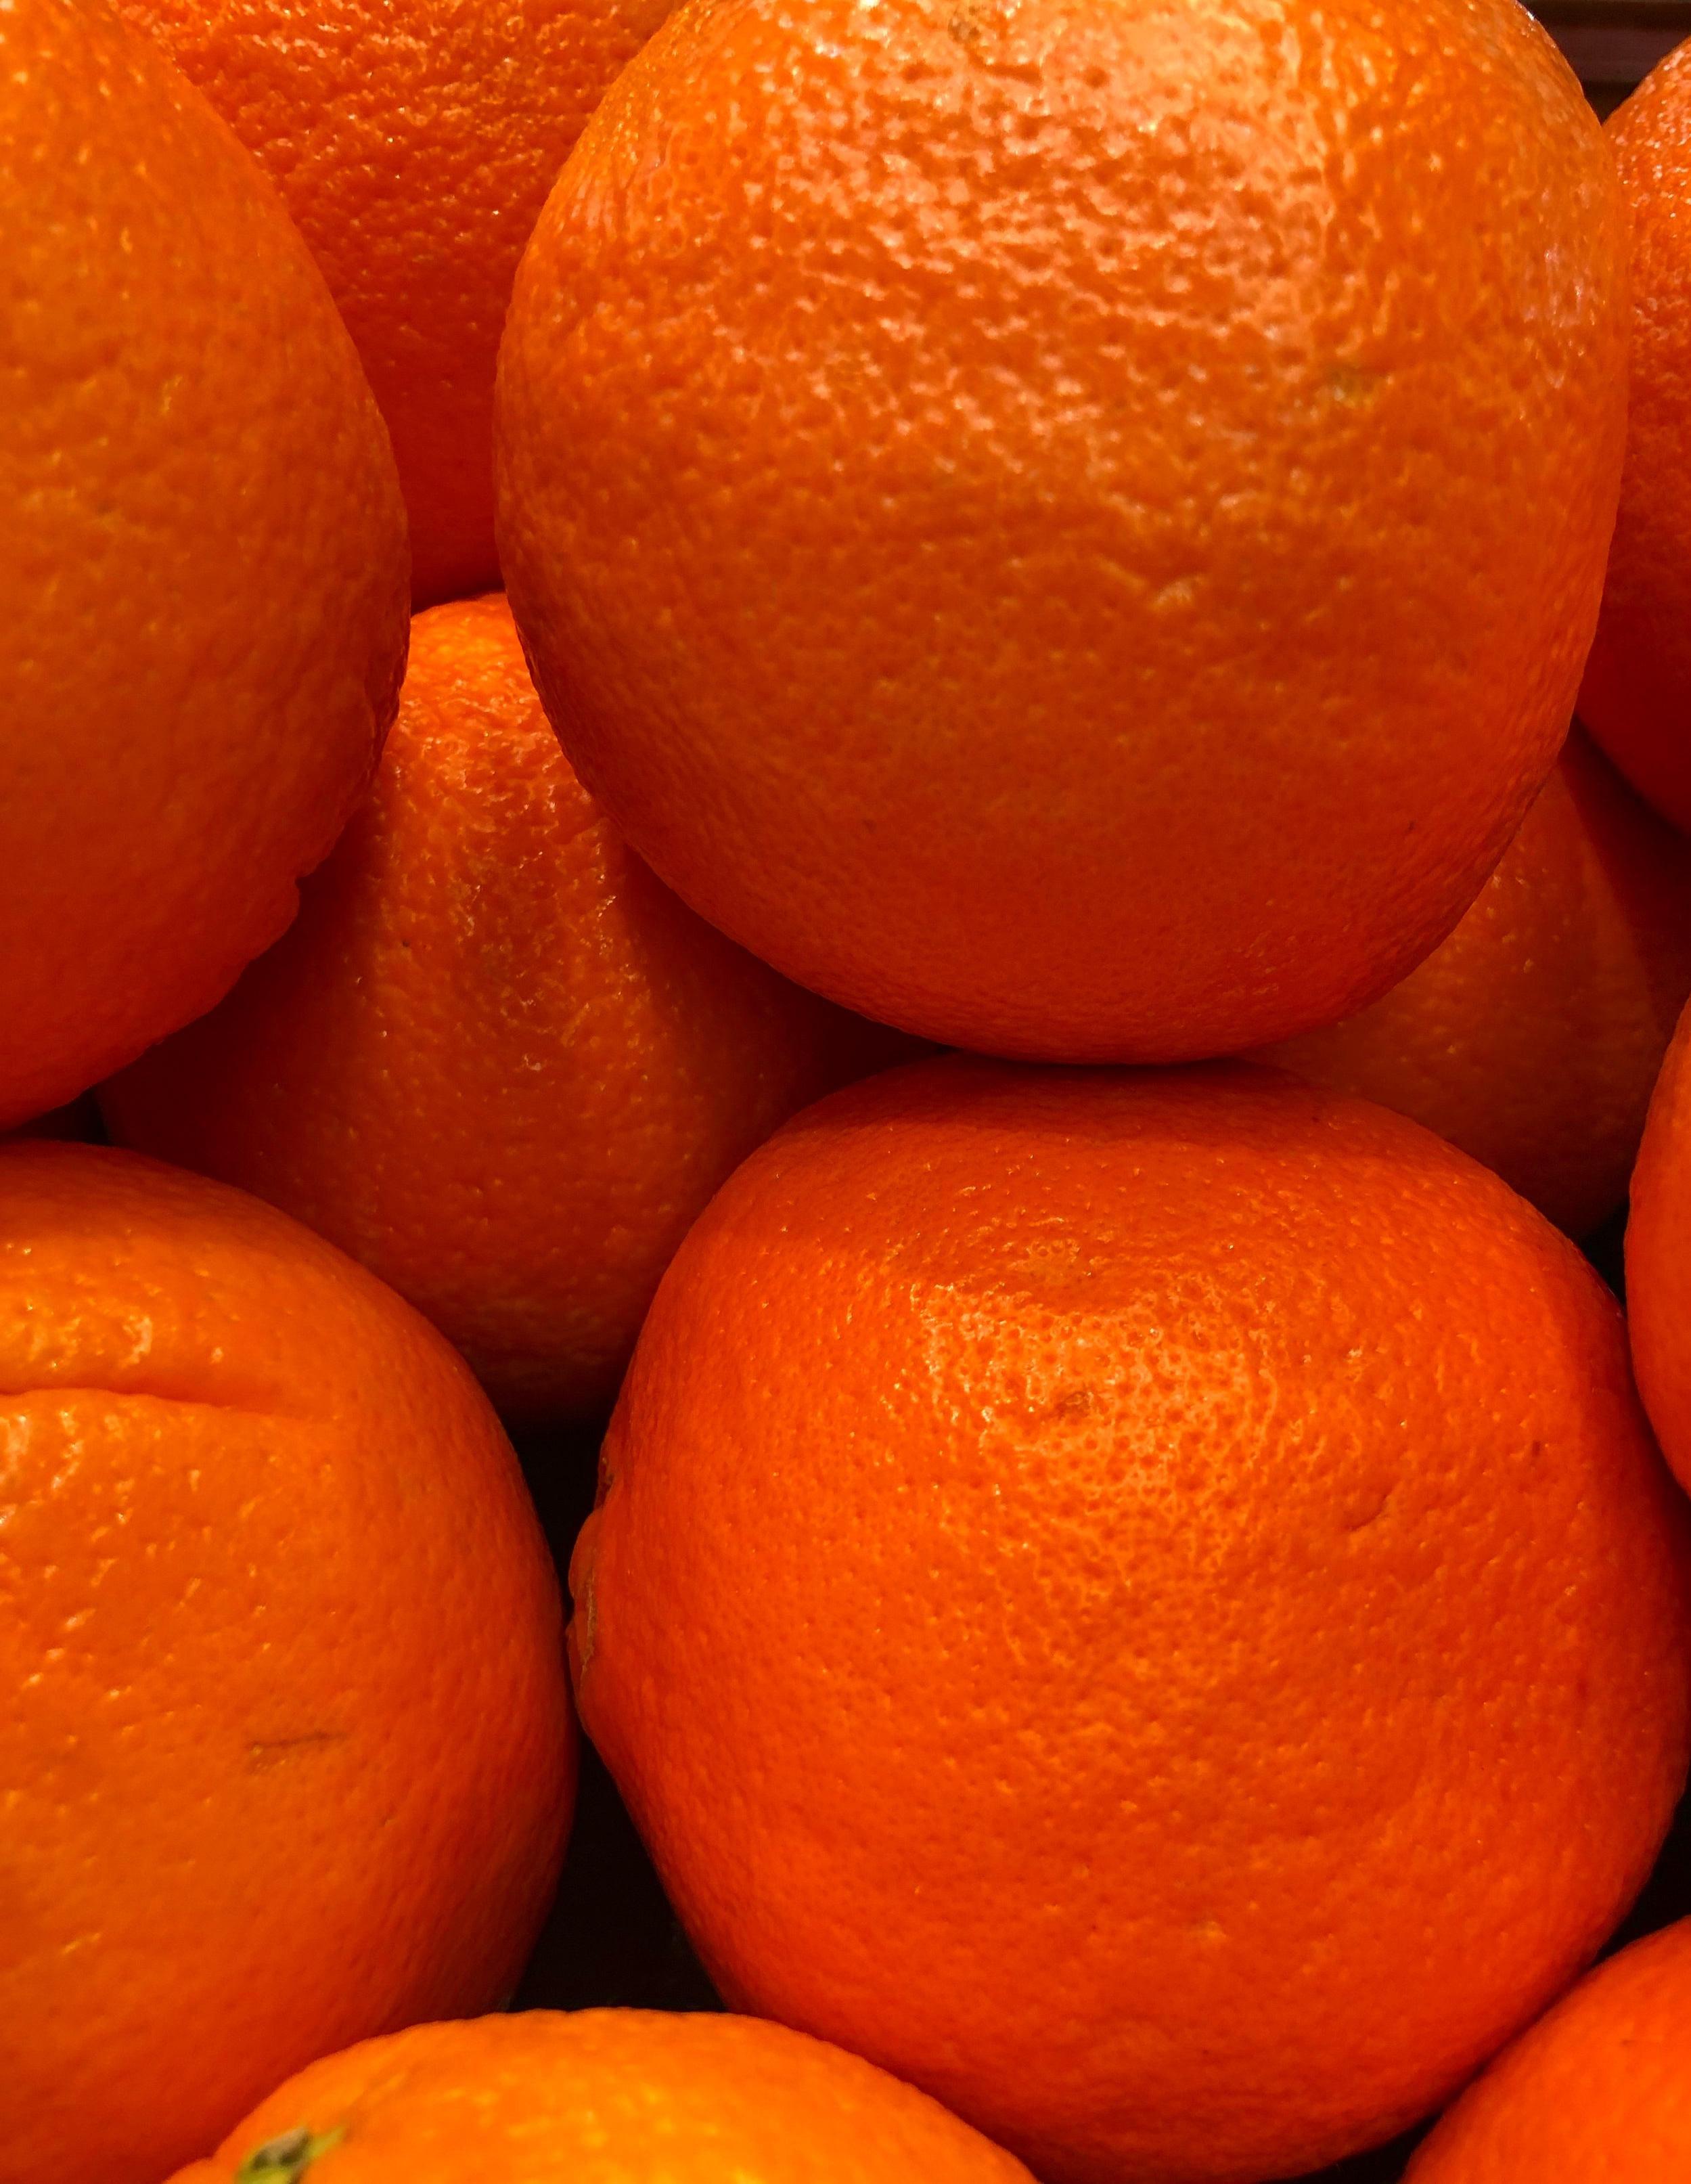 Tis the season for delicious citrus! Pick some up for a burst of Vitamin C.